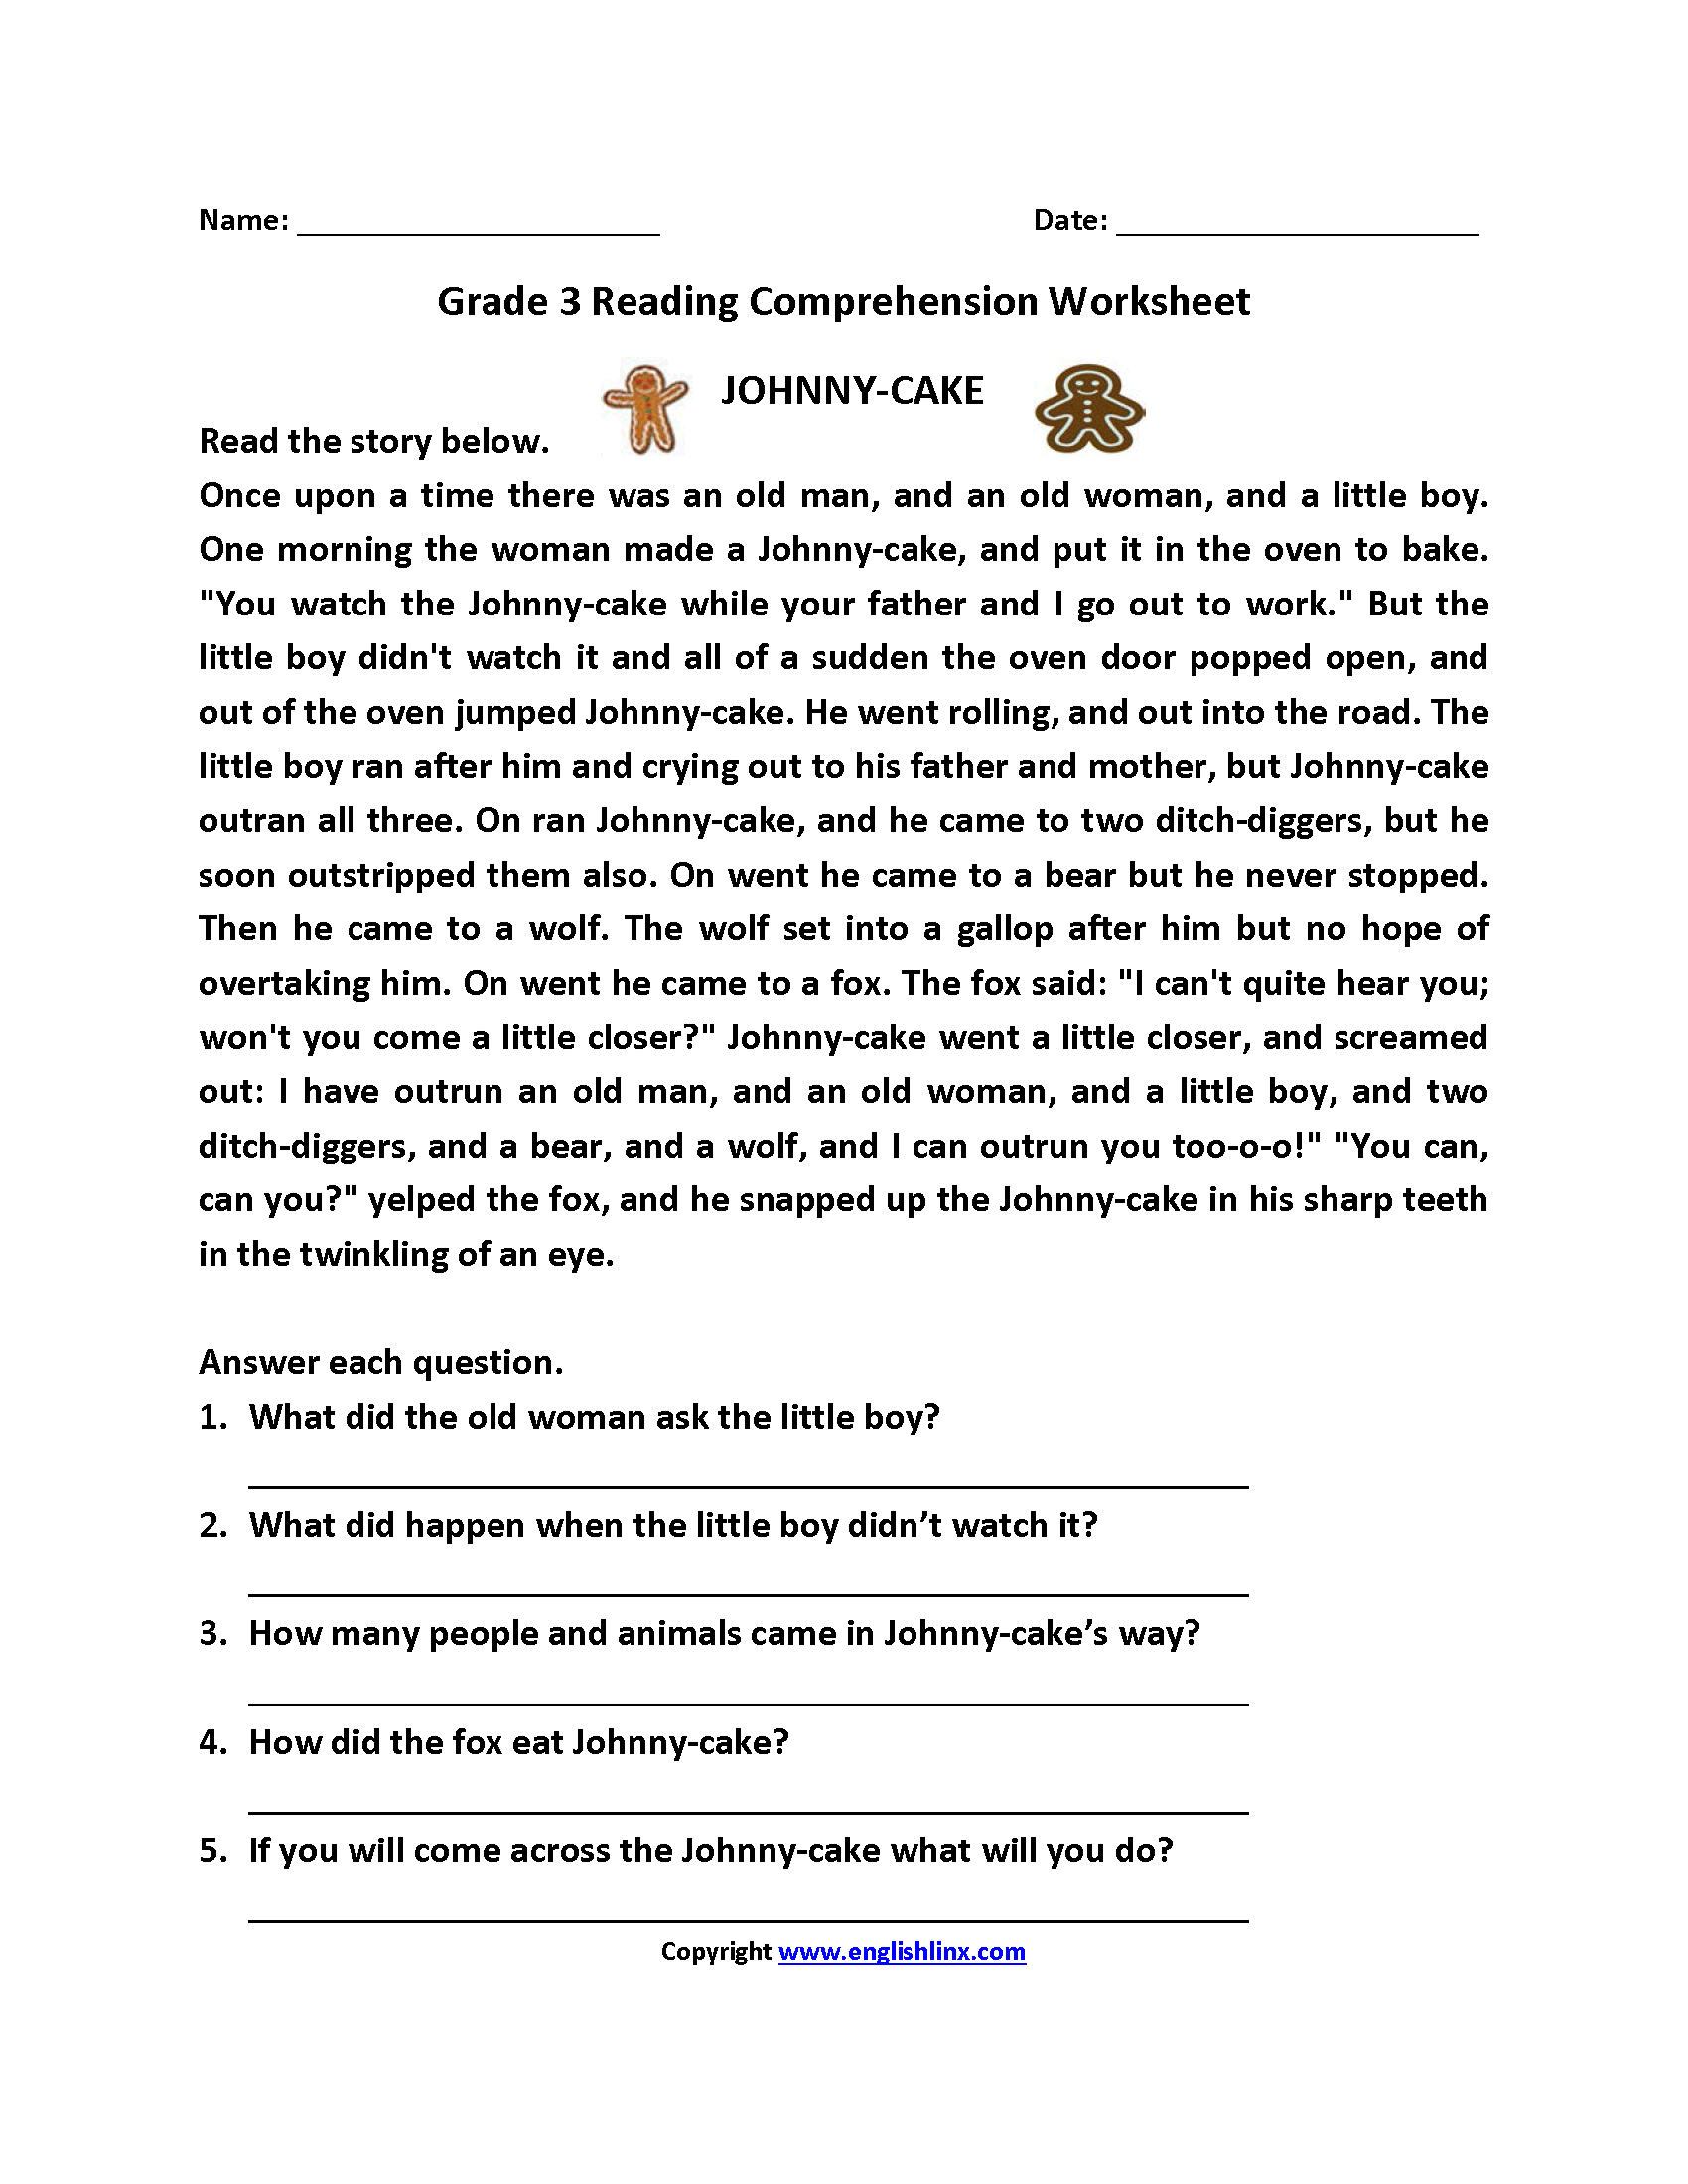 Johnny Cake Third Grade Reading Worksheets